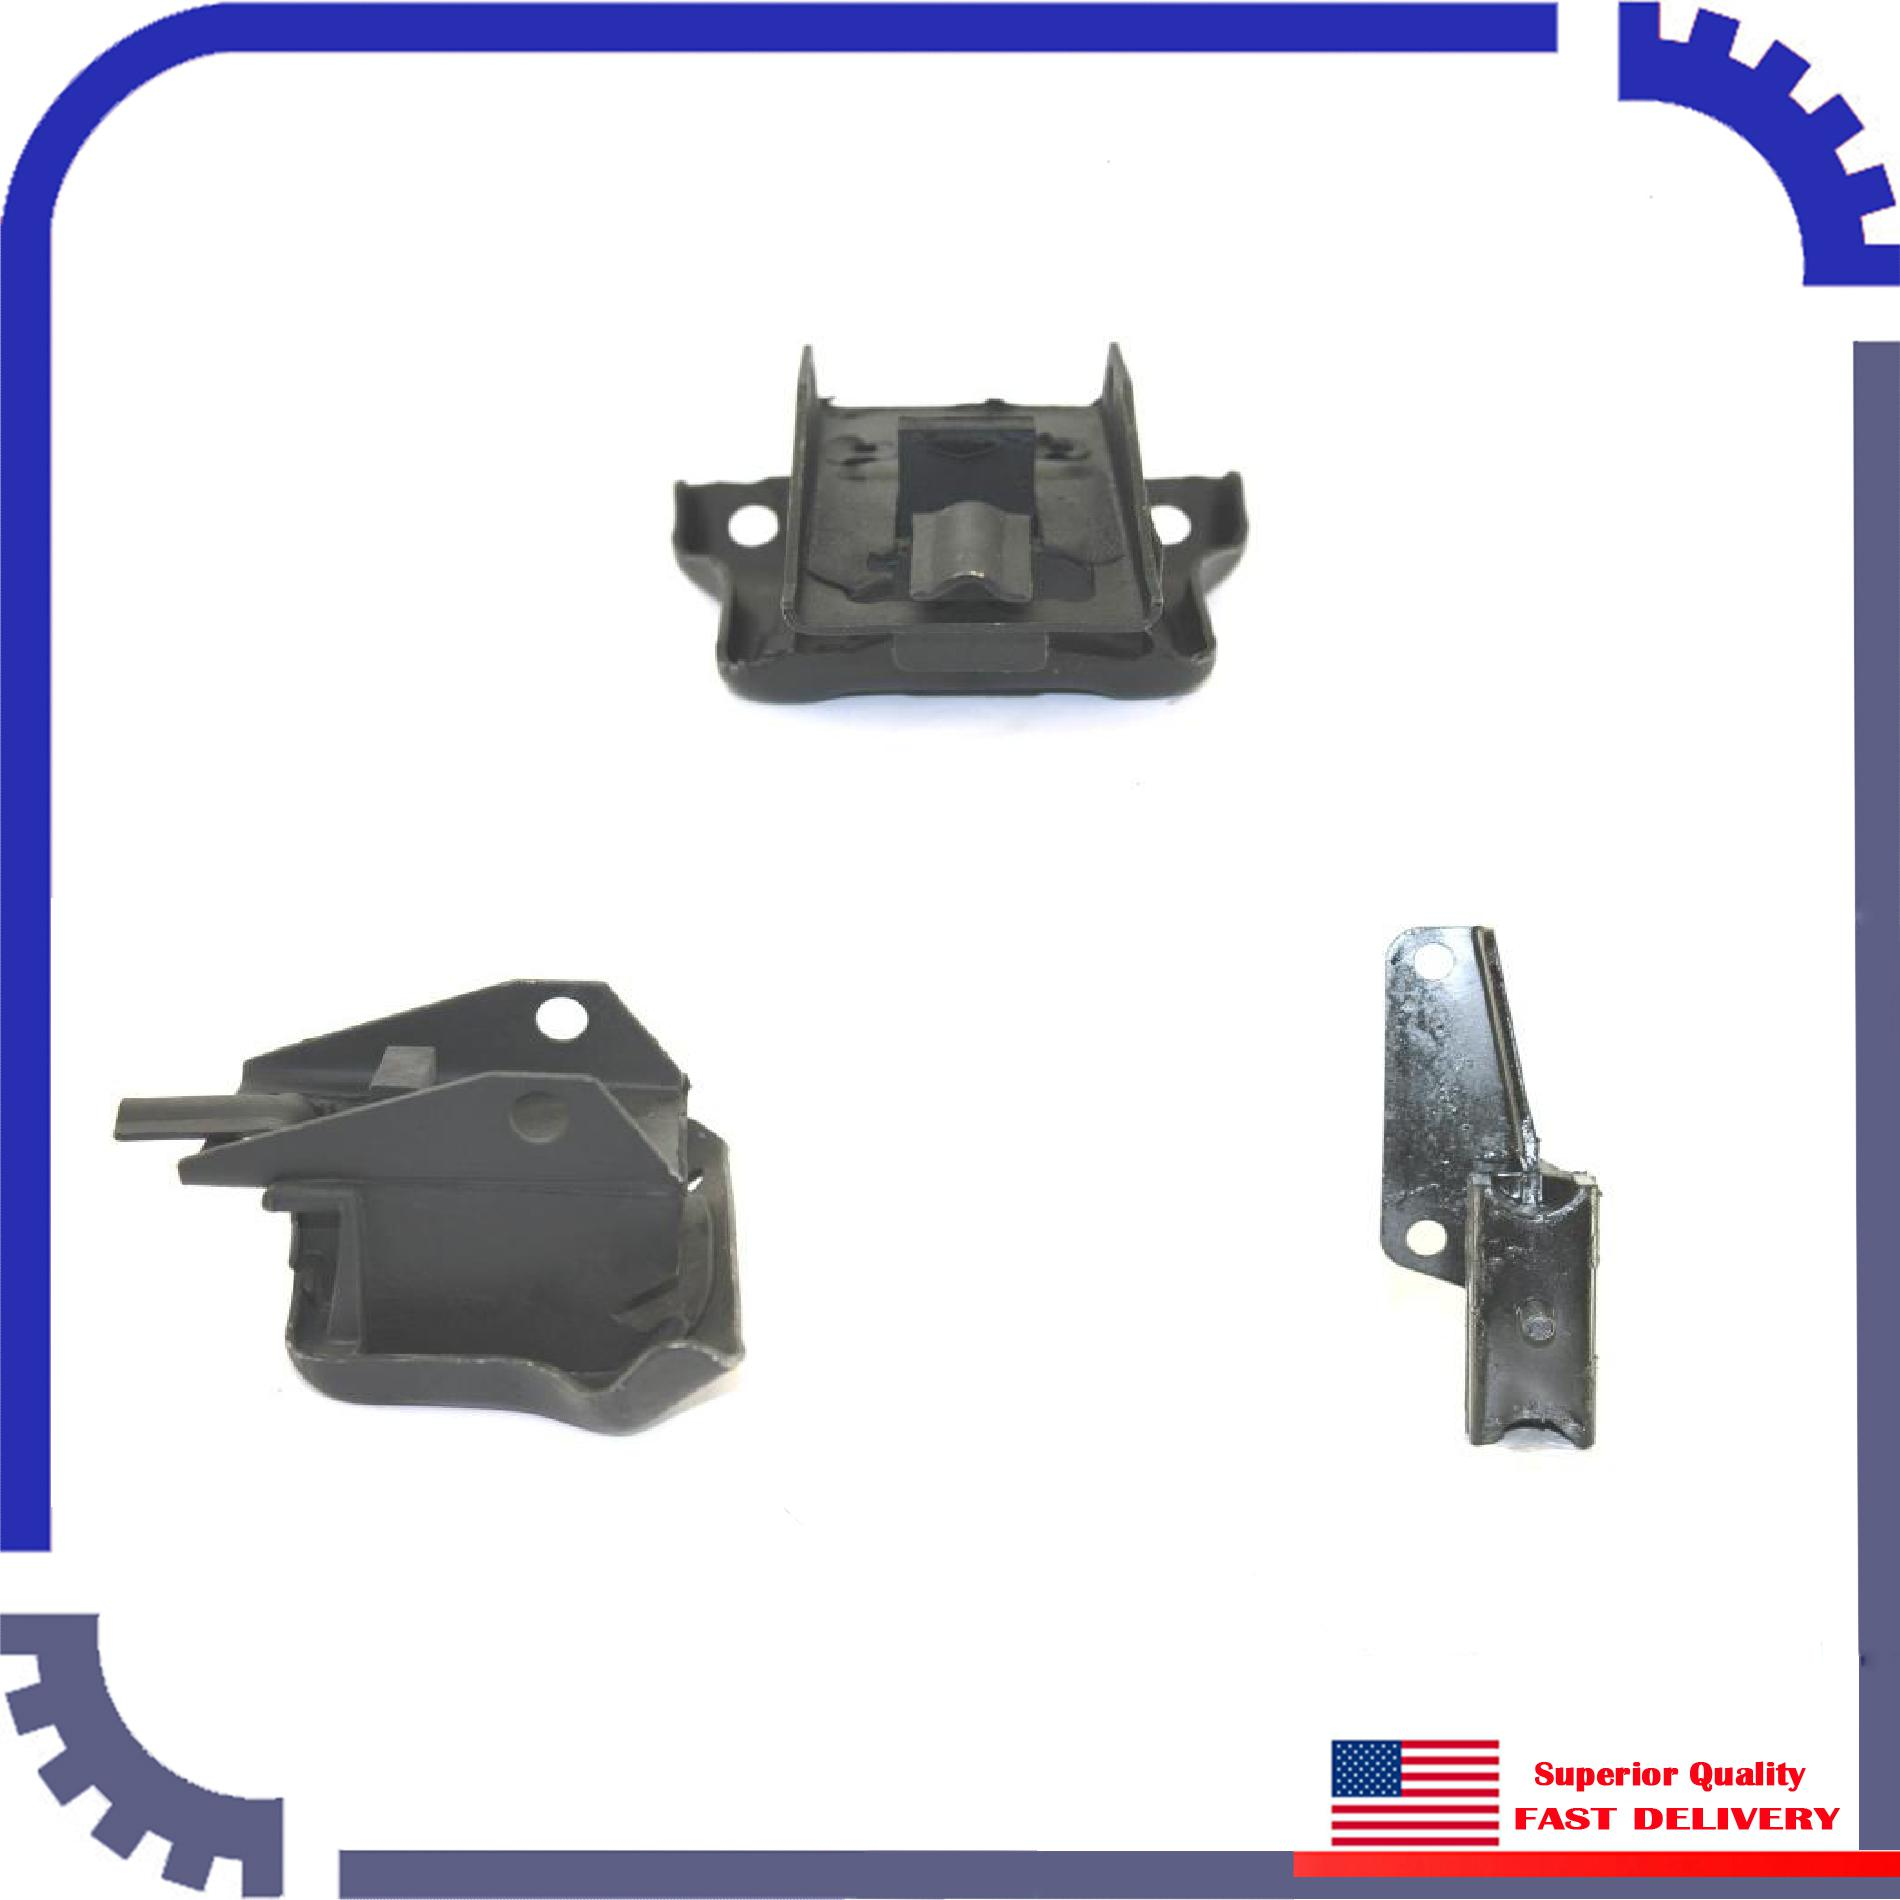 Westar-Auto Trans /& Engine Motor Mount Set 5X For 1980-1984 EL CAMINO 3.8L